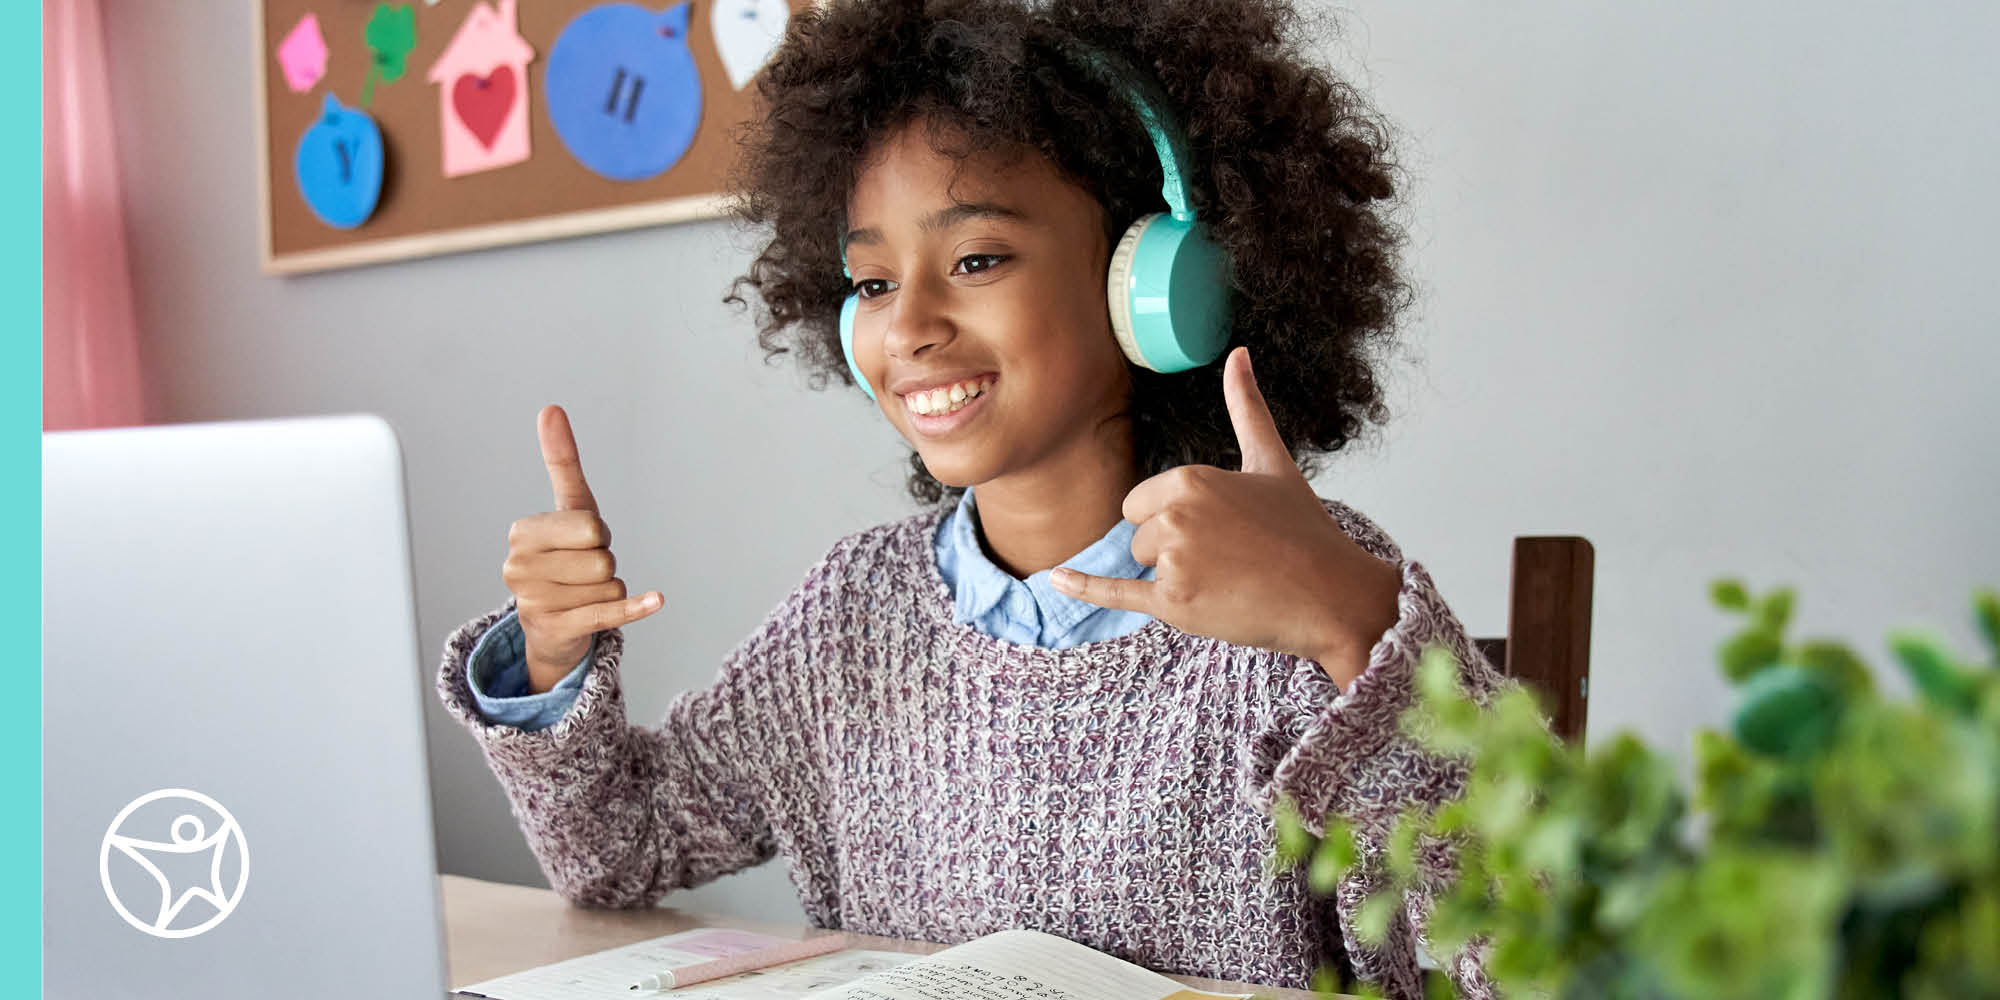 African American girl using sign language in front of a computer